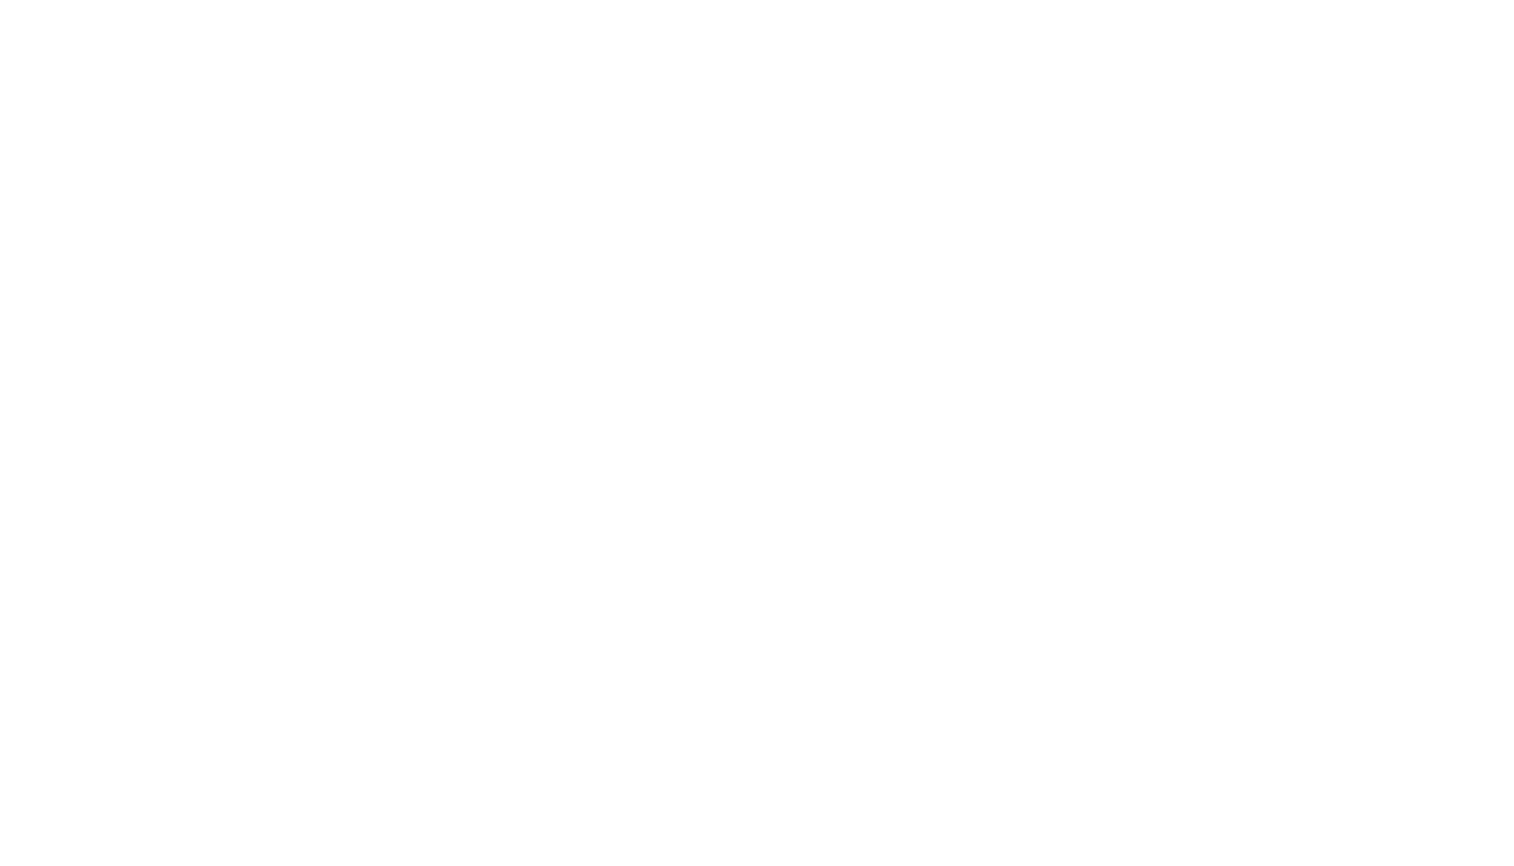 All Copy Products Copier scanner